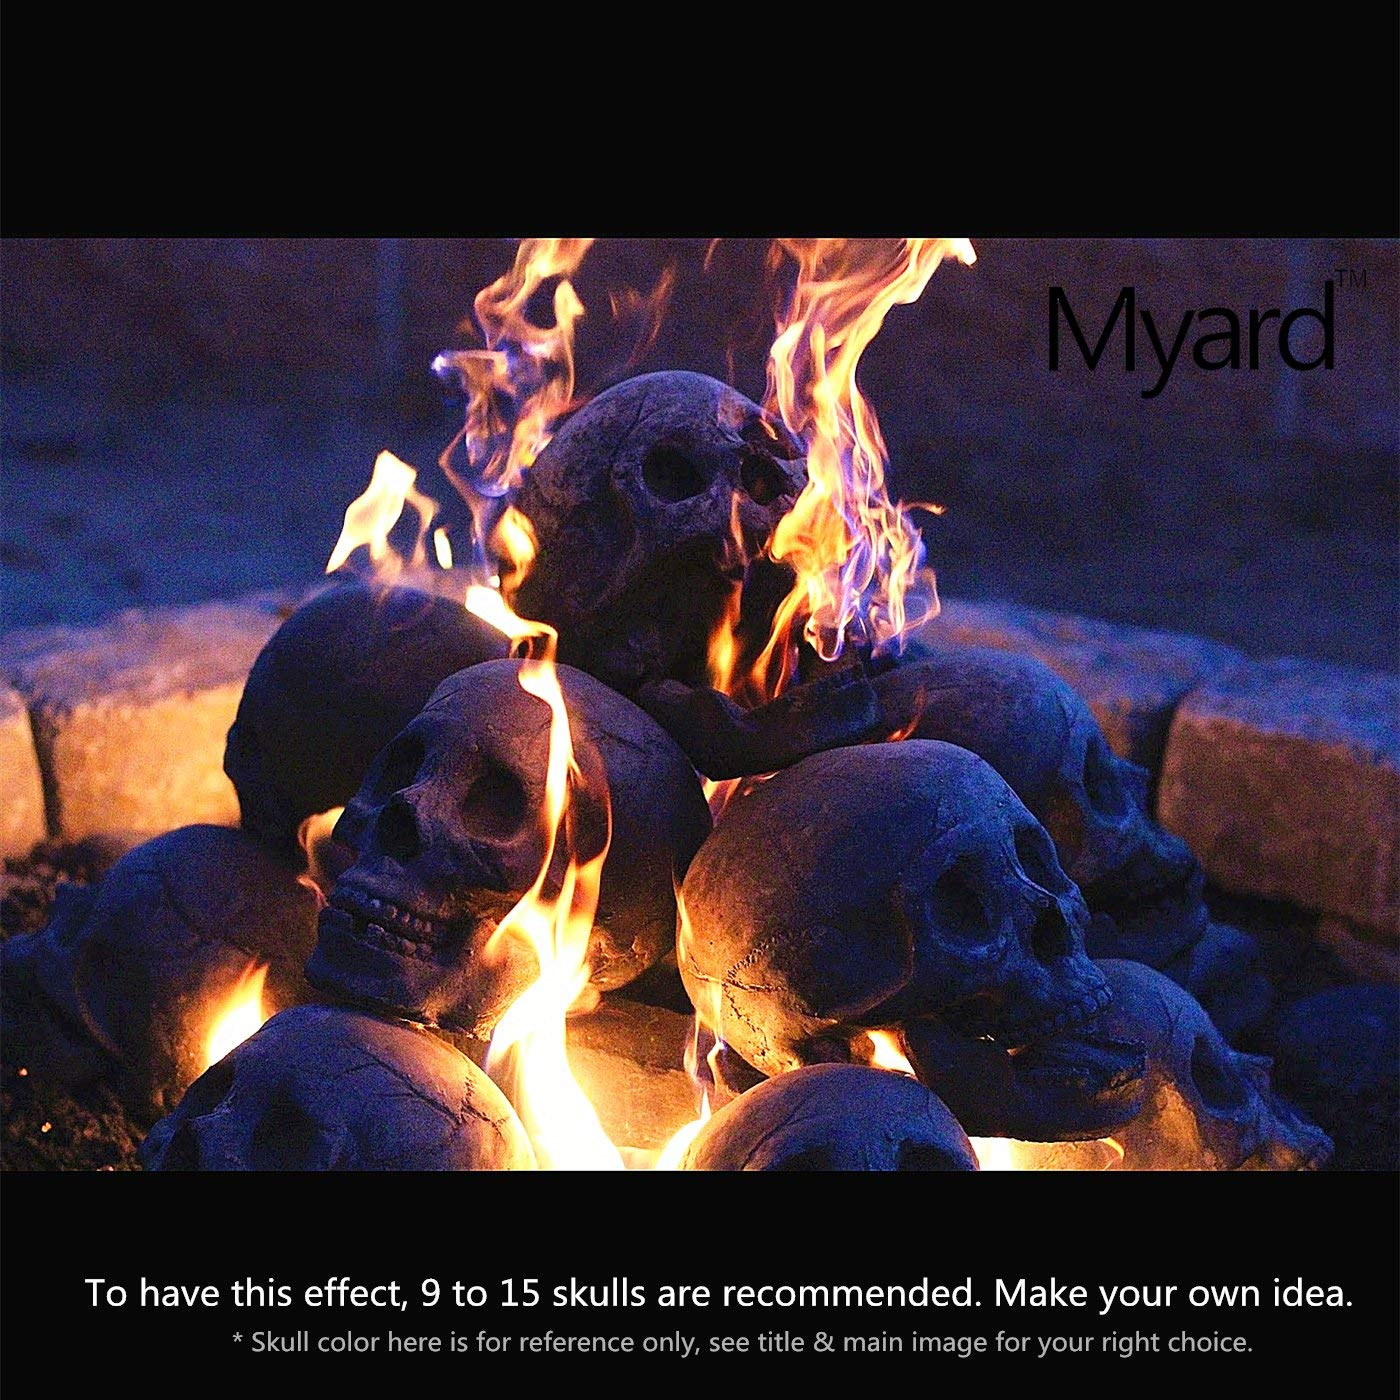 Myard Fireproof Imitated Human Fire Pit Skull Gas Log For